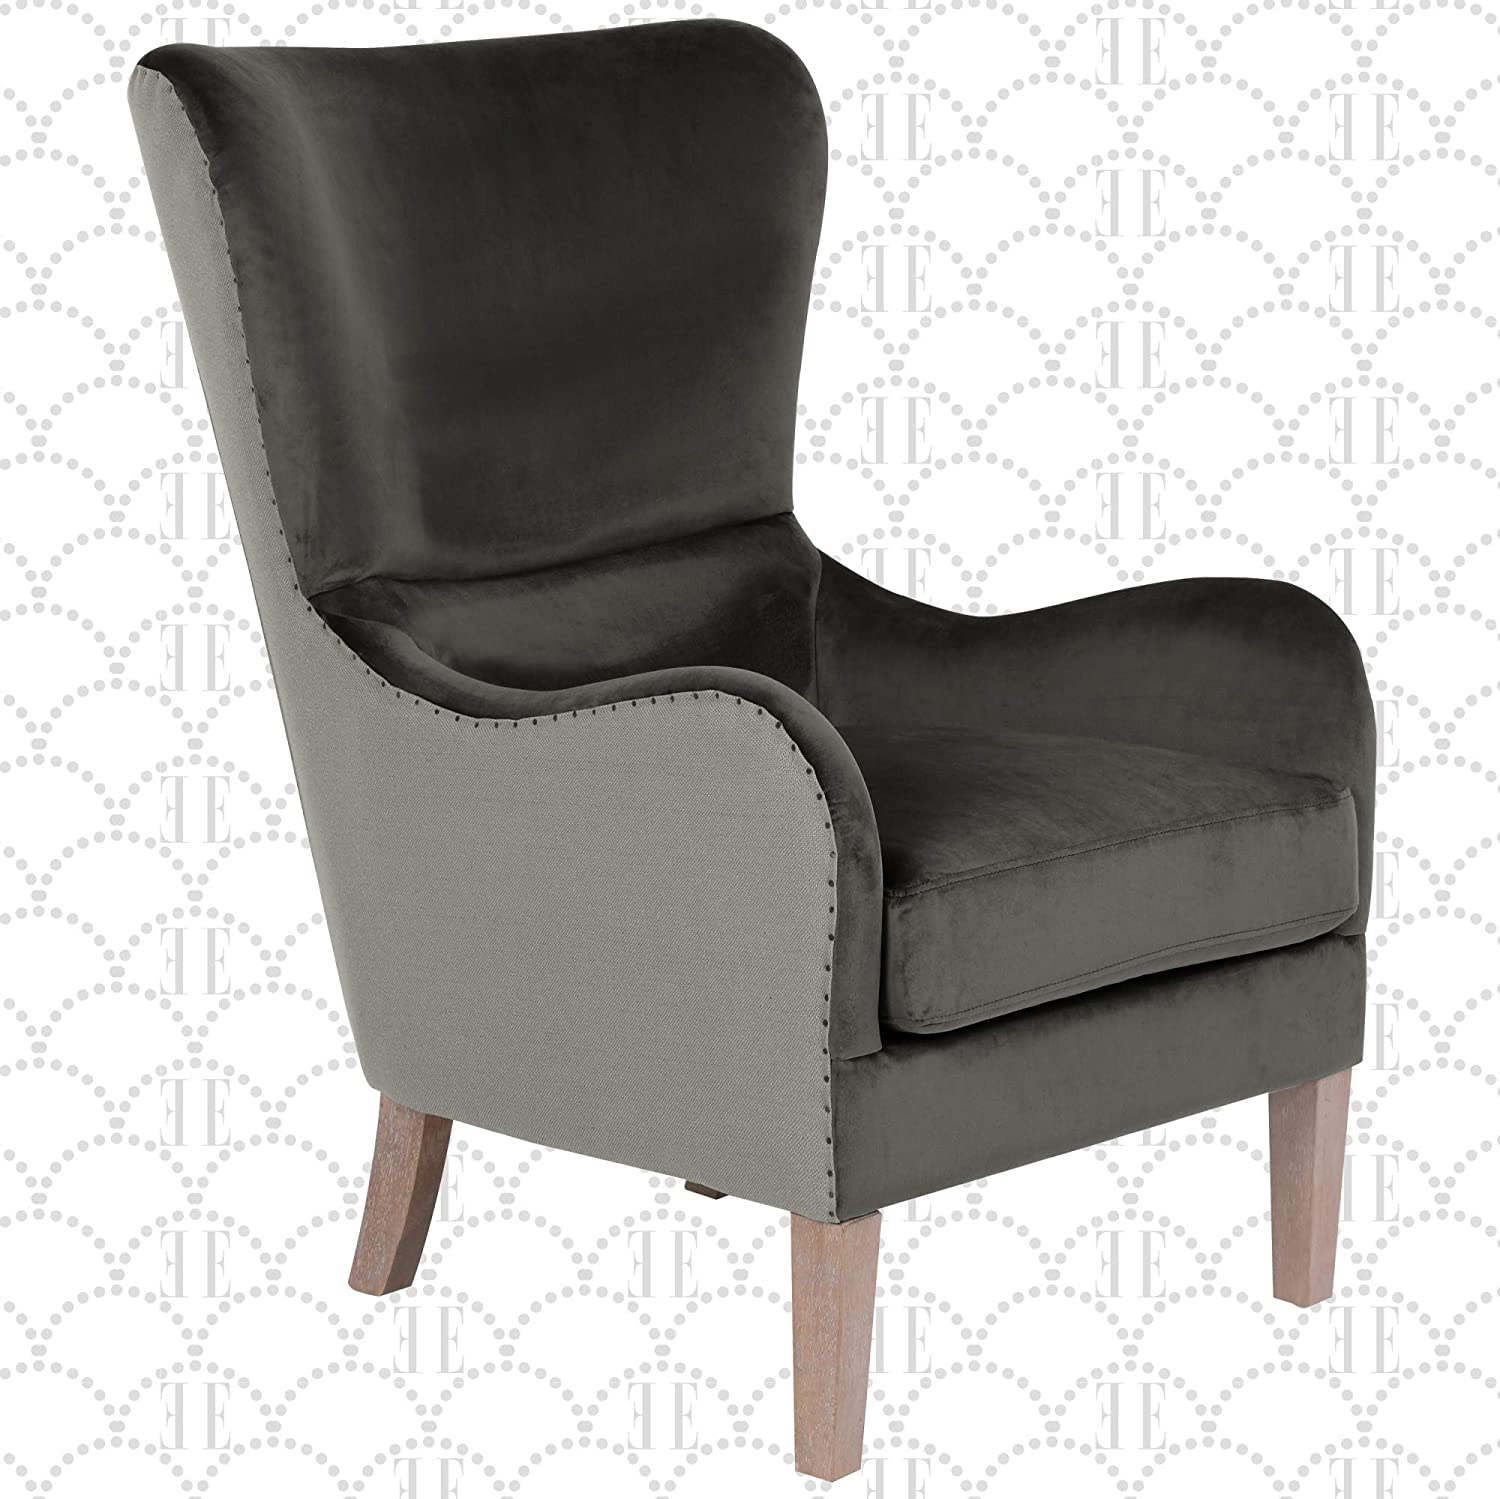 Elle Decor Wingback Upholstered Accent Chair Farmhouse Armchair For Living Room Two Toned Dark Gray Furniture Decor